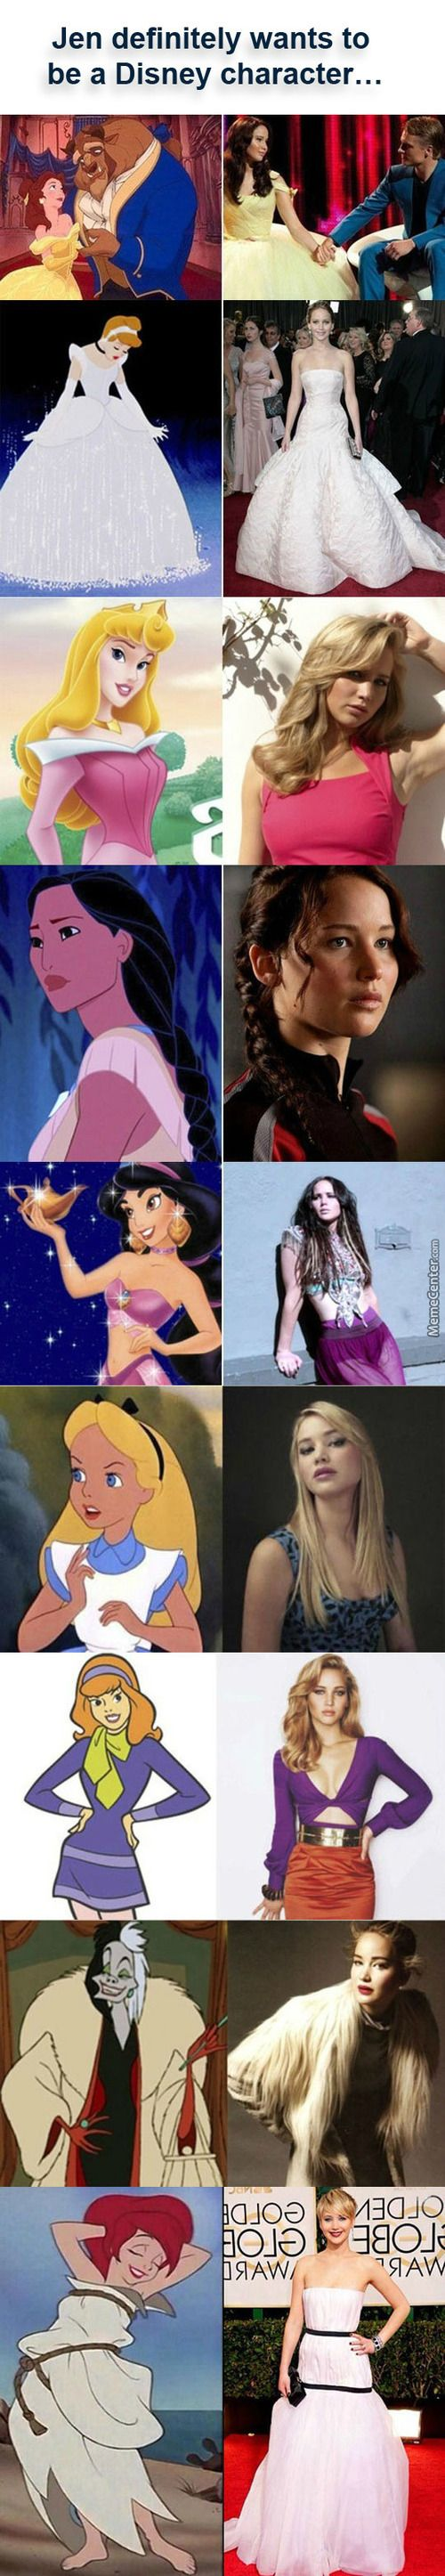 Tumblr Disney 1 Memes. Best Collection of Funny Tumblr Disney 1 Pictures